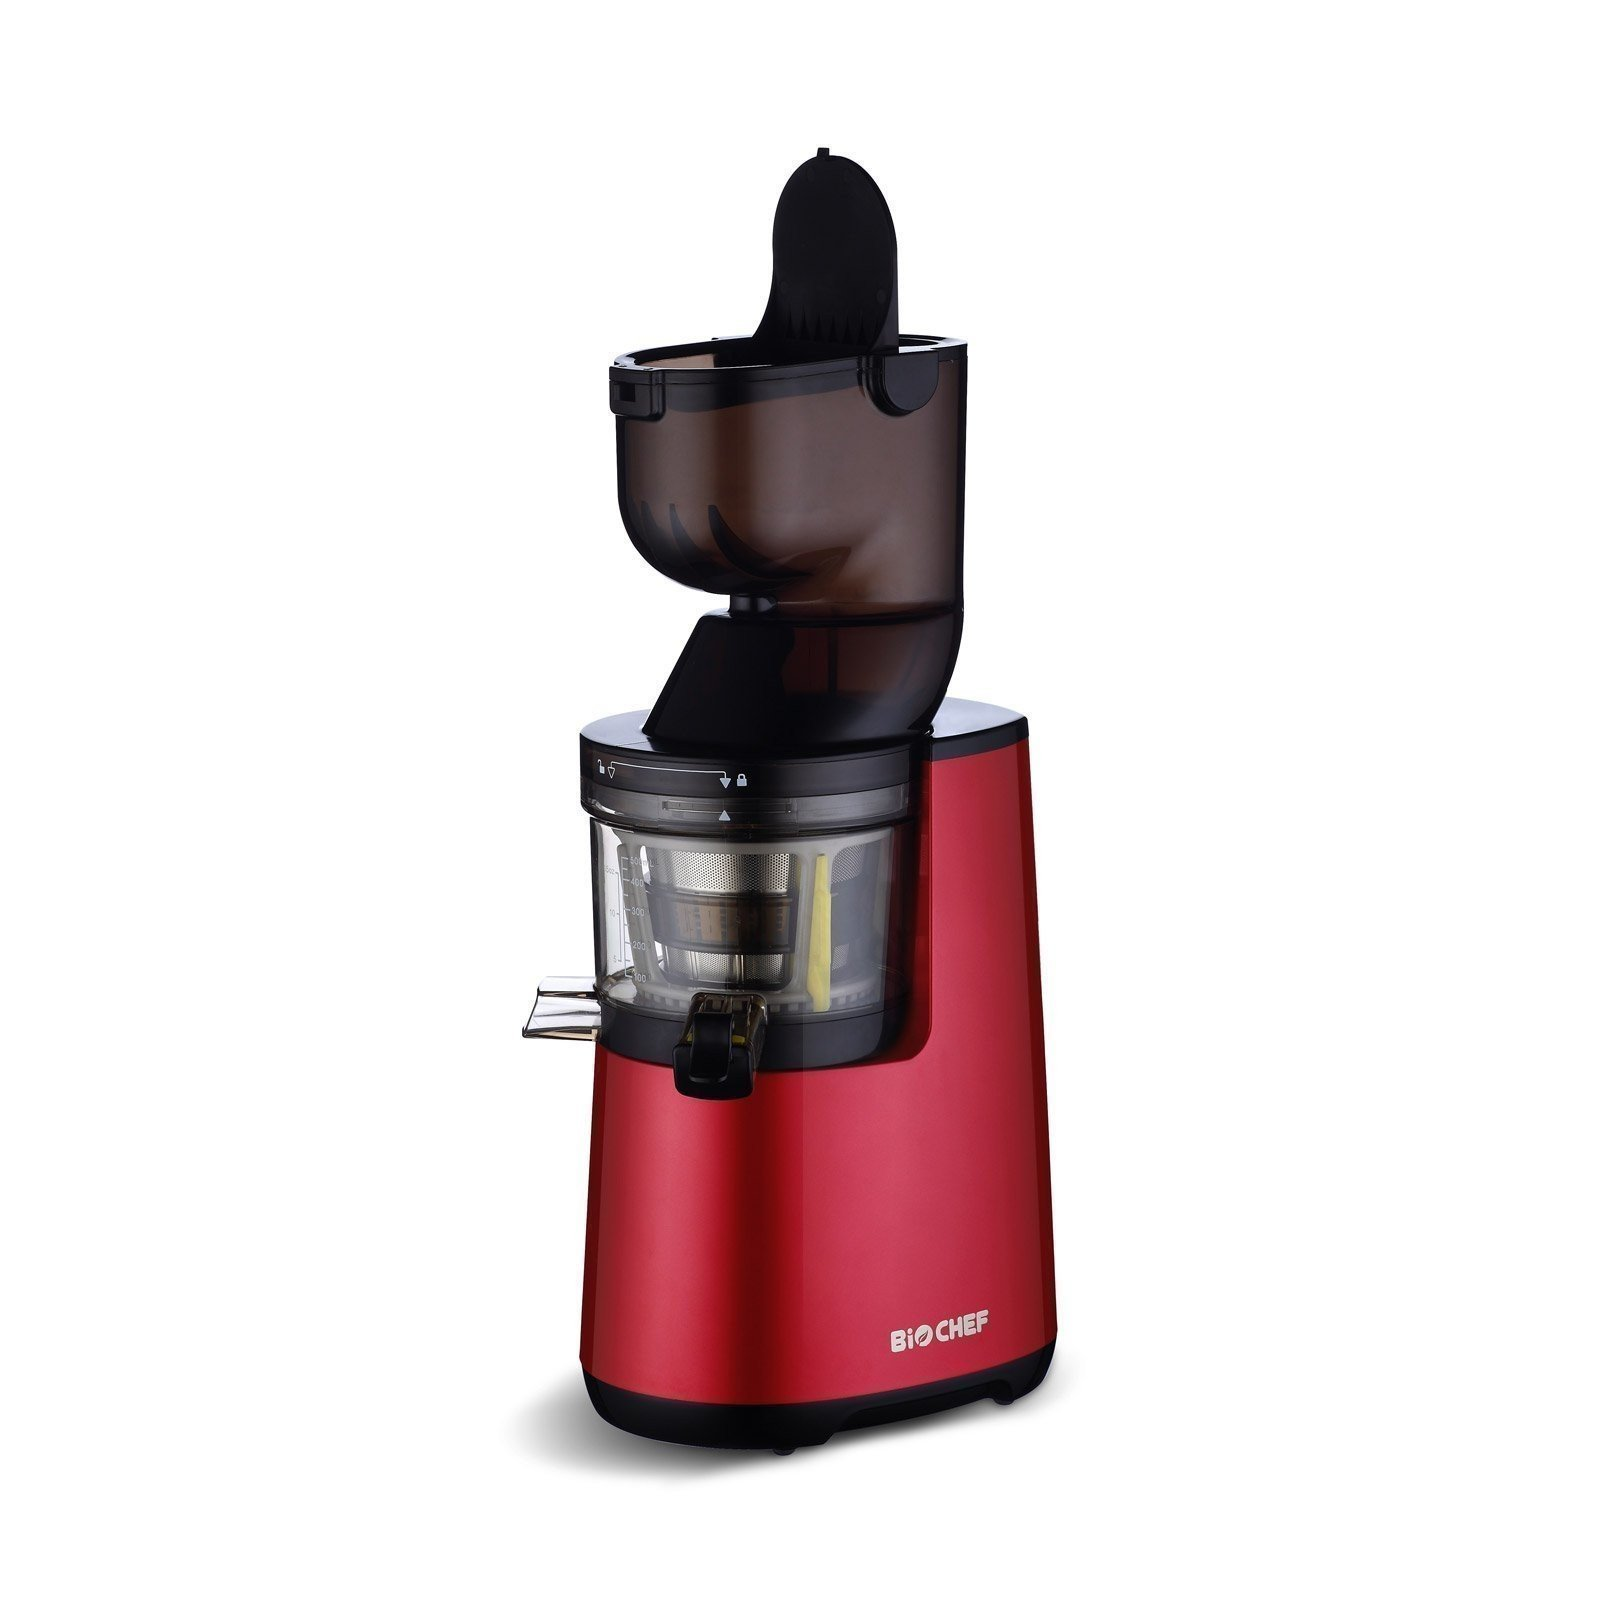 BioChef Cold Press Juicer